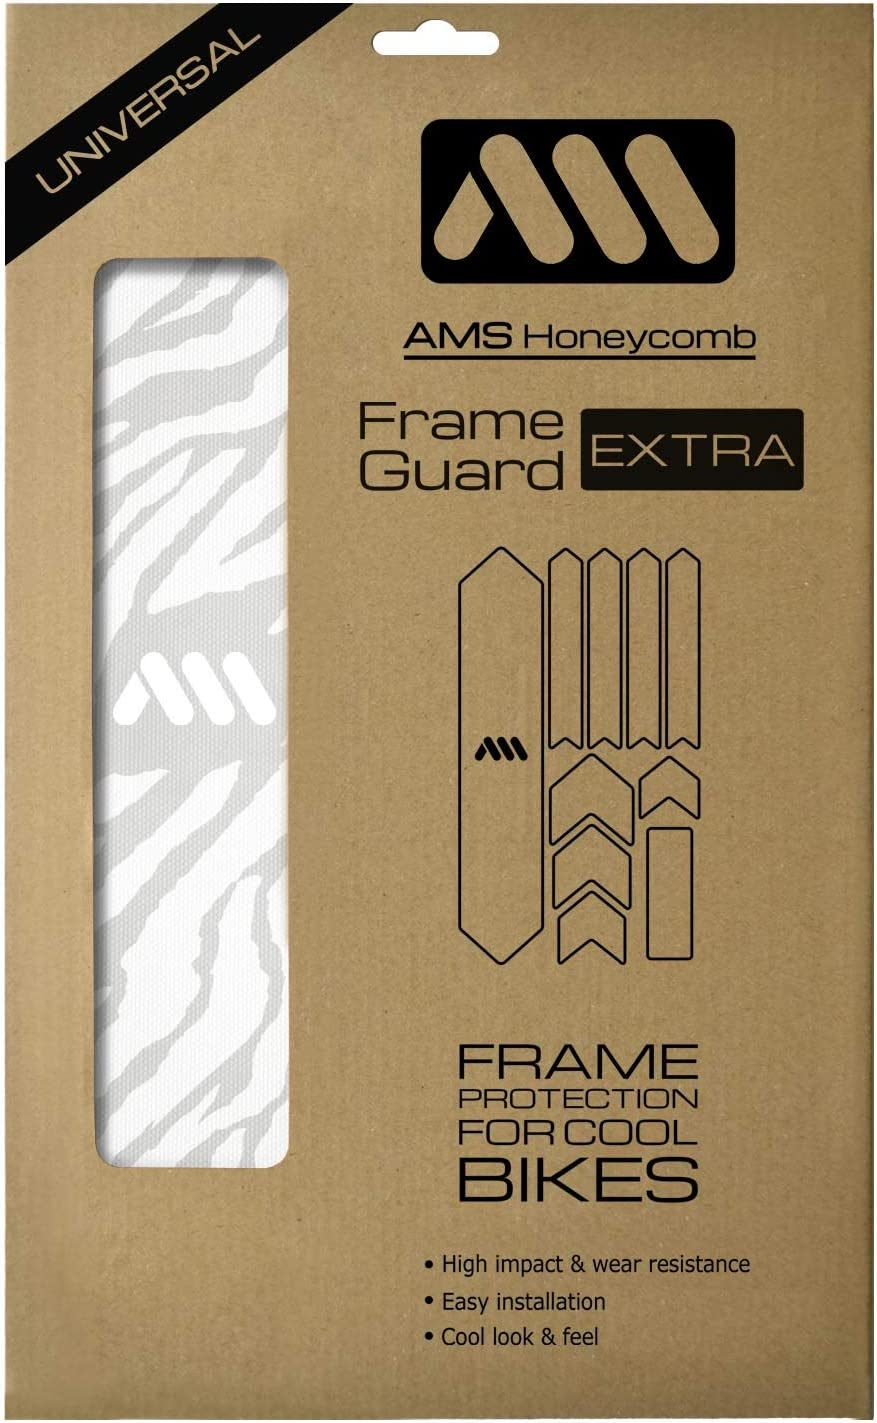 Ranking integrated 1st place All Mountain Style AMS High Impact Max 85% OFF – Guard Extra Frame Prot